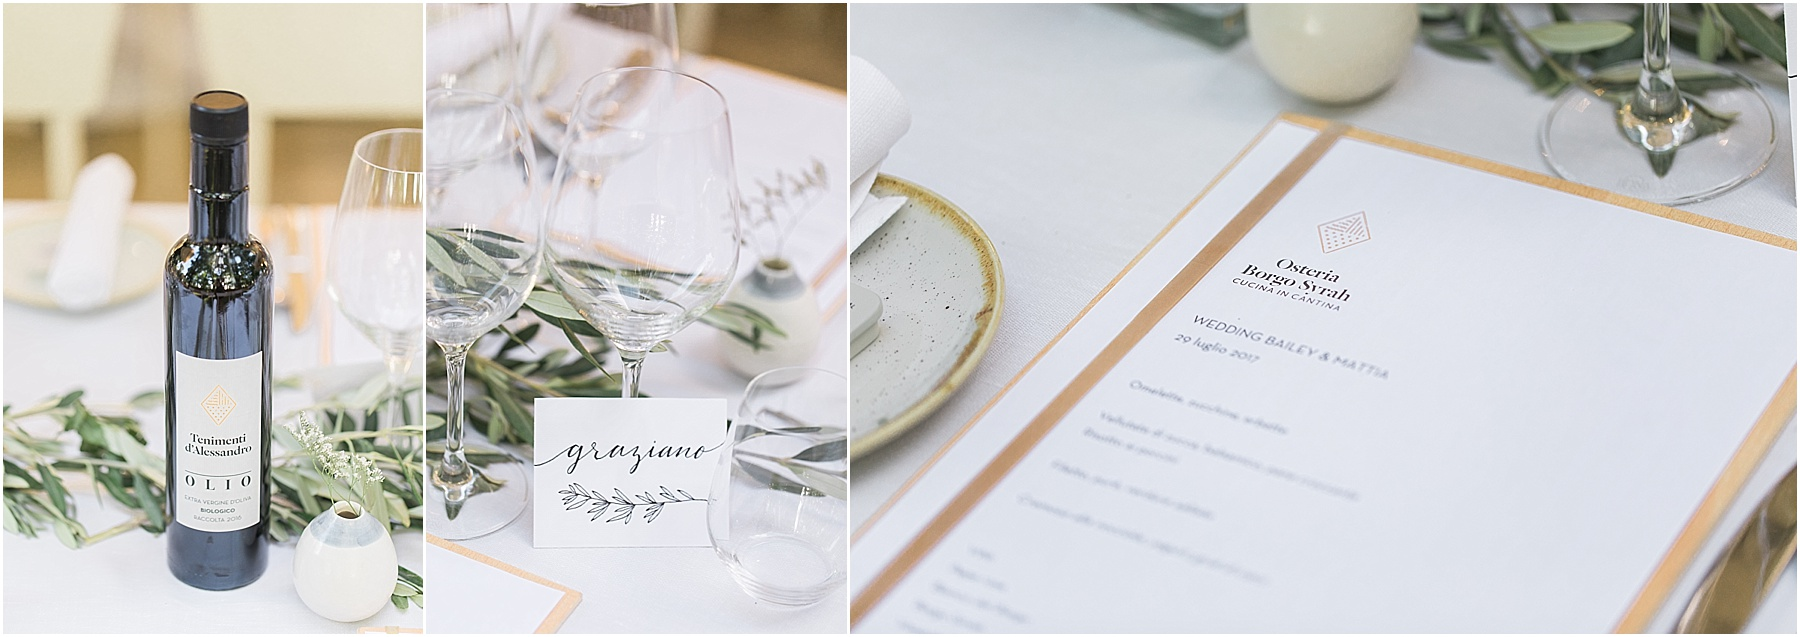 decor and beautiful bomboniere wedding favors ceramiche pottery at Osteria Borgo Syrah in Cortona Italy tablescape menus calligraphy in Italian wine glasses olio evoo